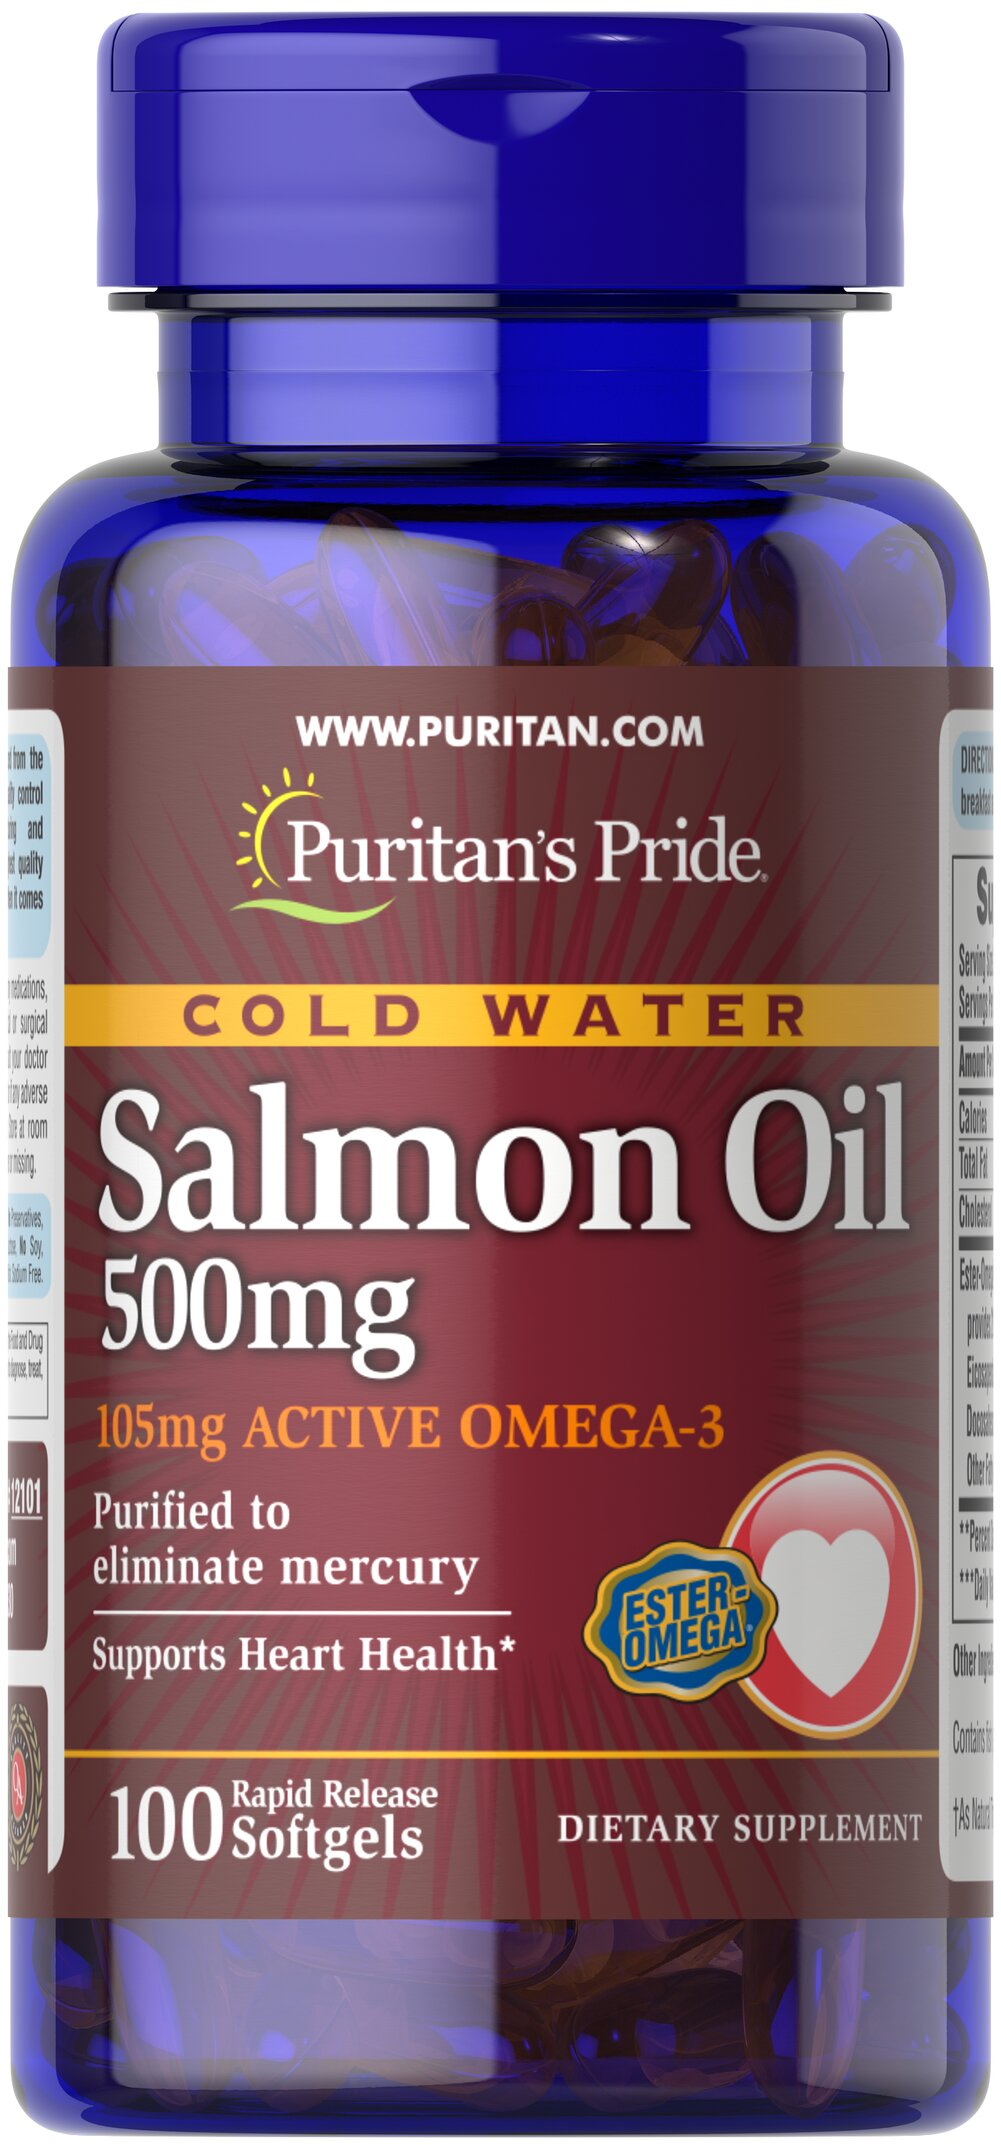 Omega-3 Salmon Oil 500 mg (105 mg Active Omega-3)  100 Softgels 500 mg